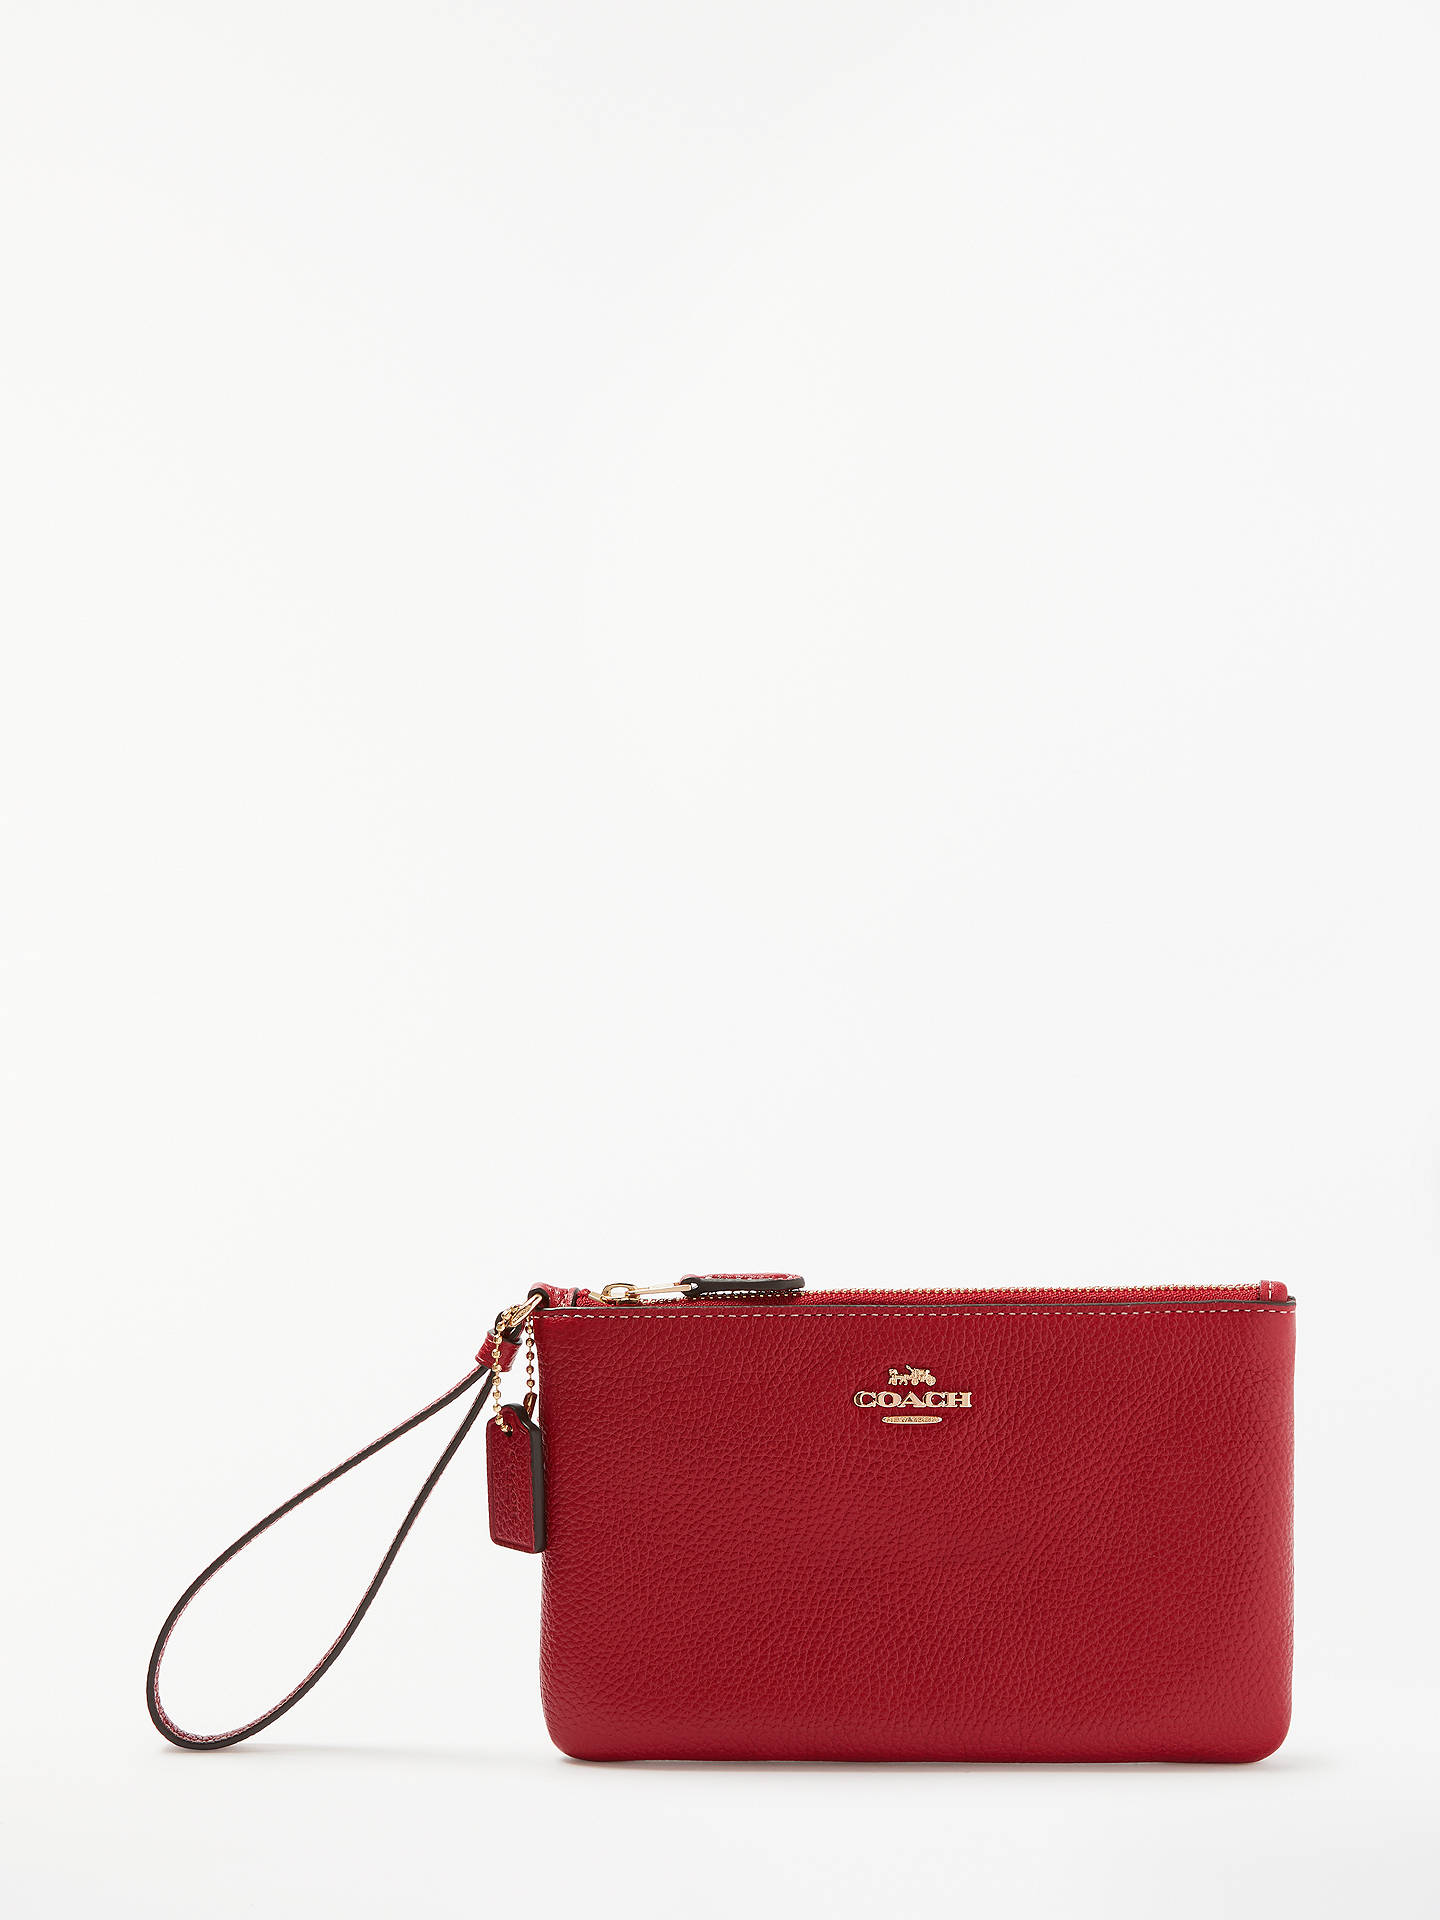 7ae8dfffc71 BuyCoach Leather Small Wristlet Purse, 1941 Red Online at johnlewis.com ...